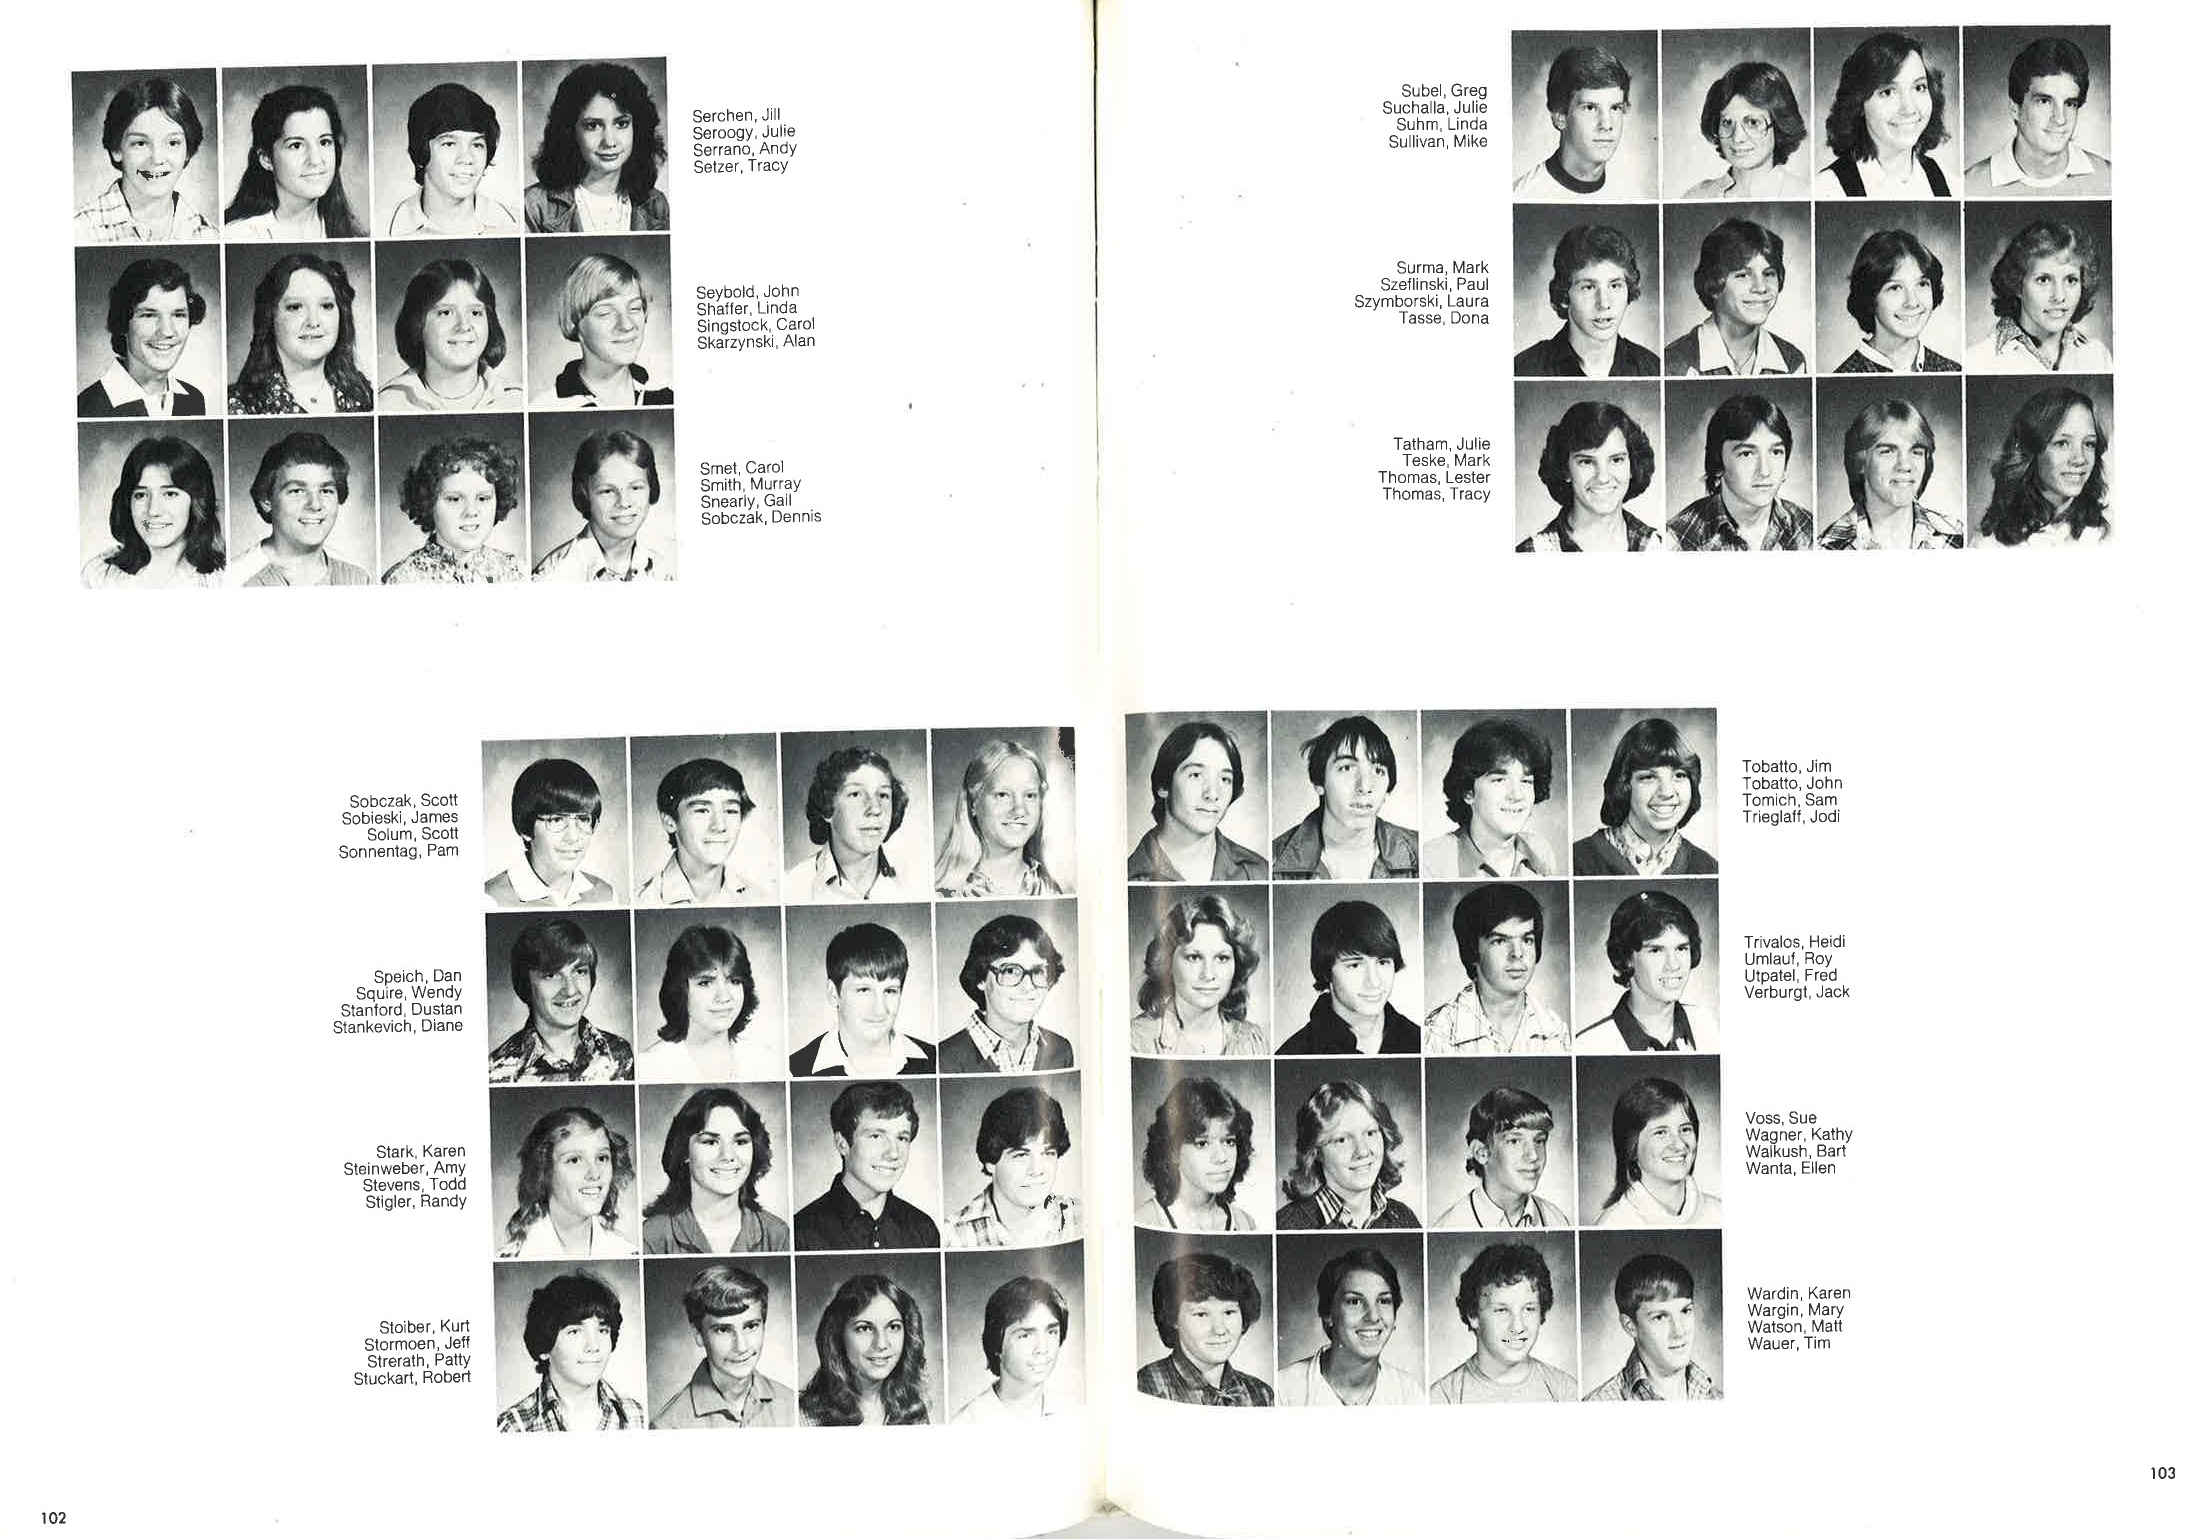 1980_Yearbook_102.jpg